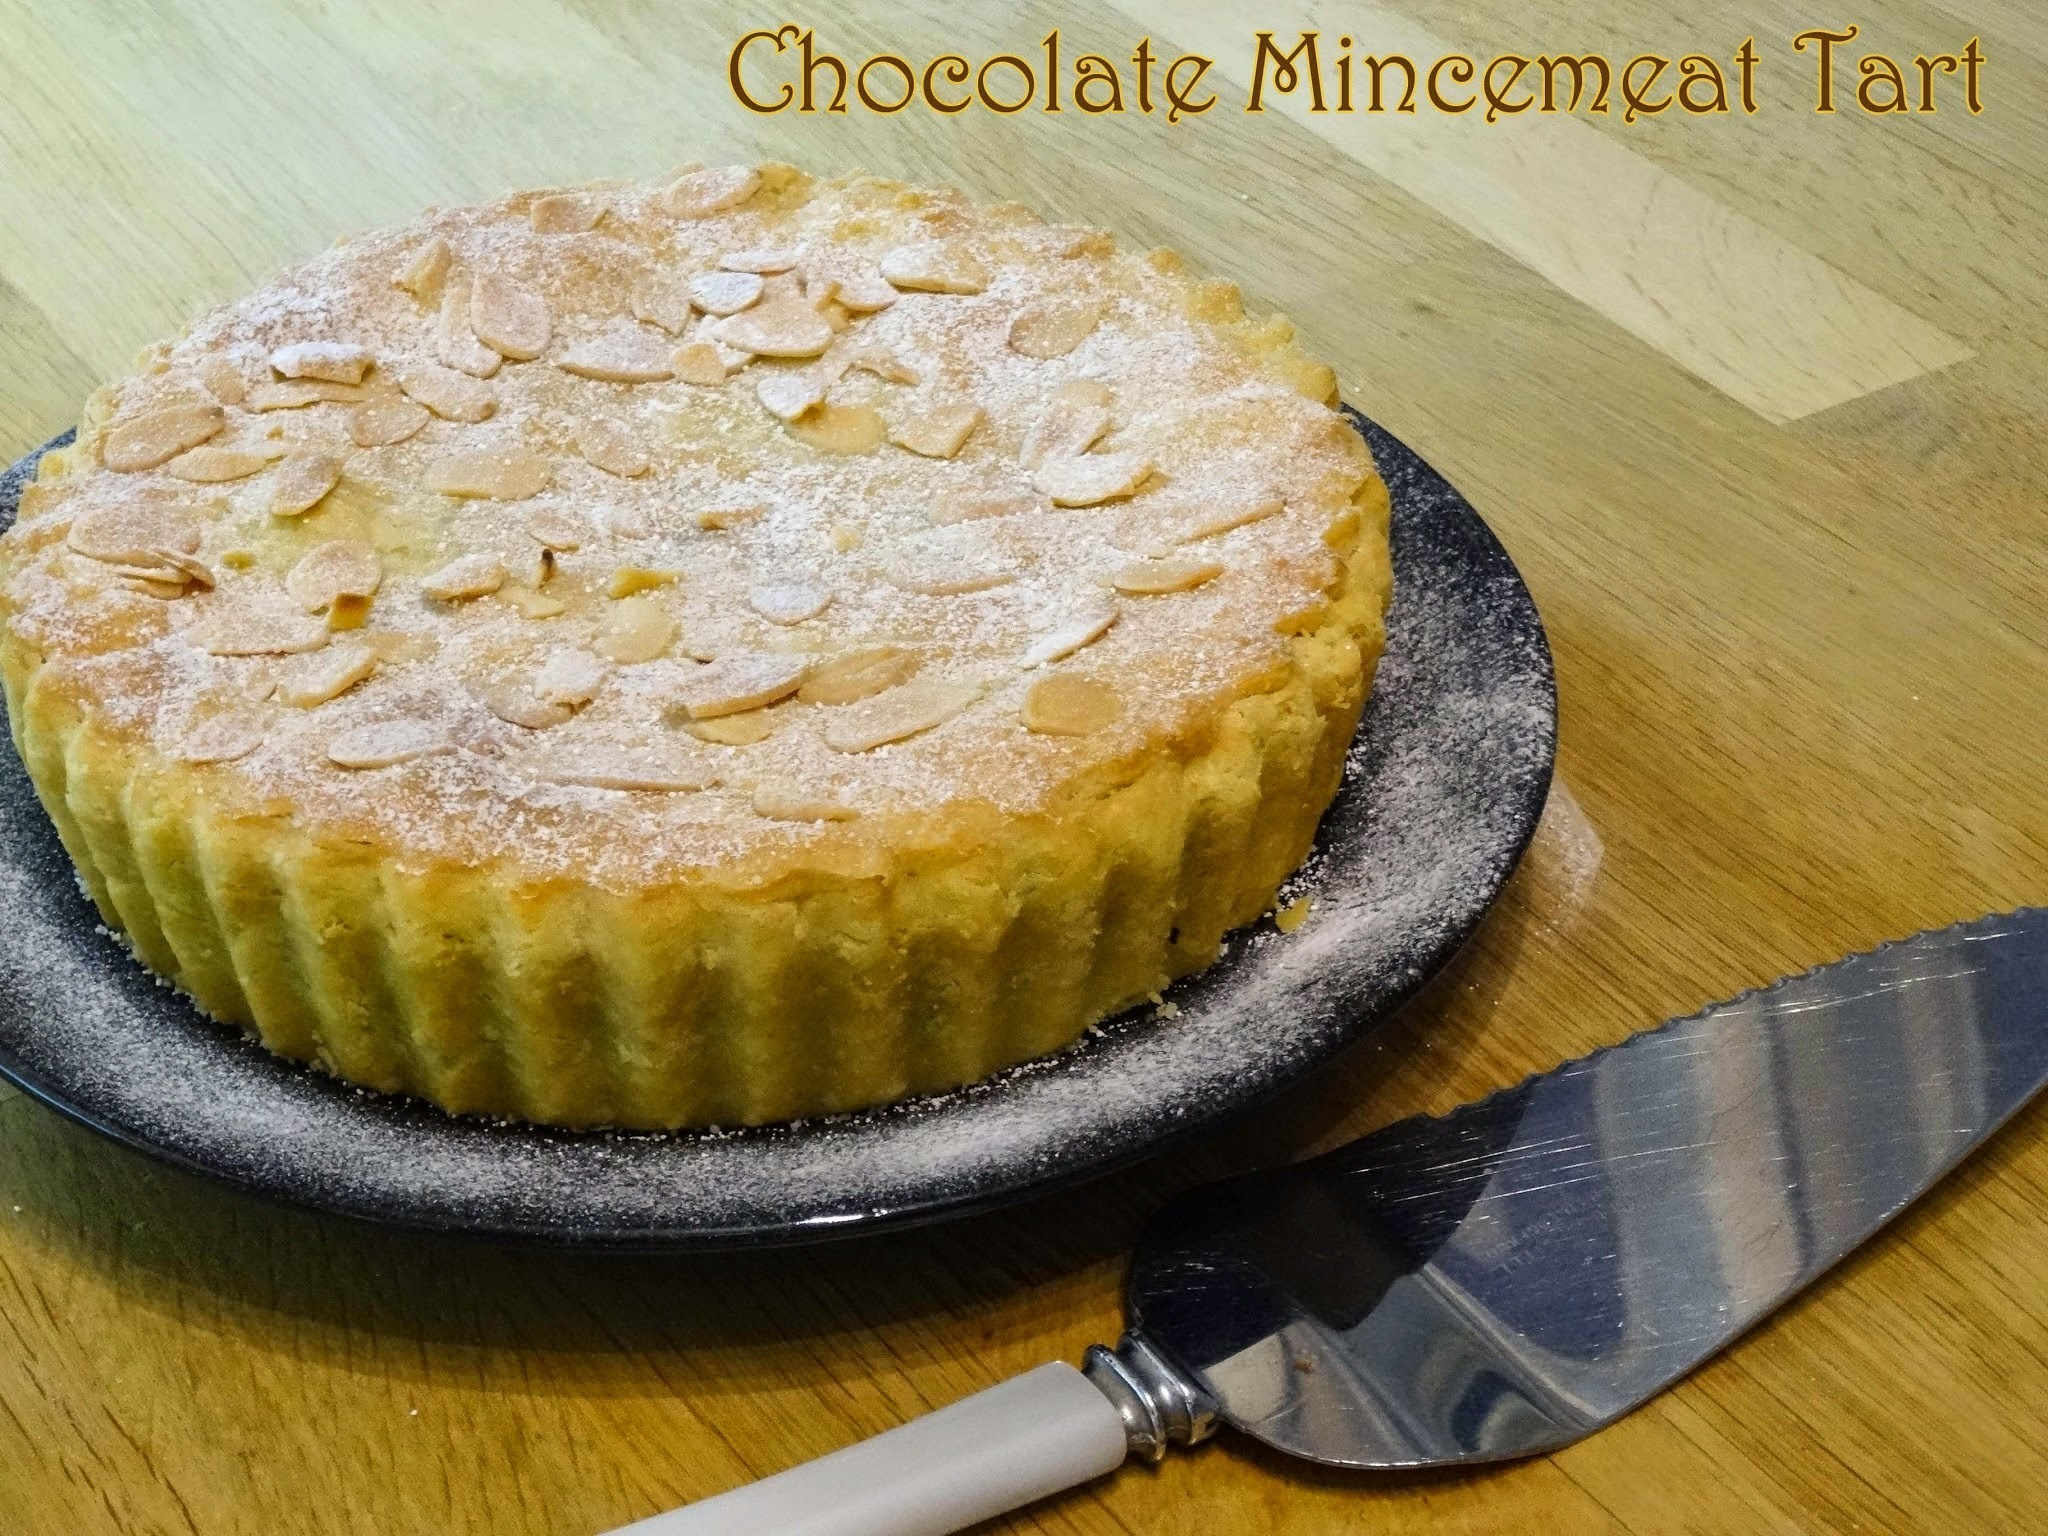 Chocolate Mincemeat Tart